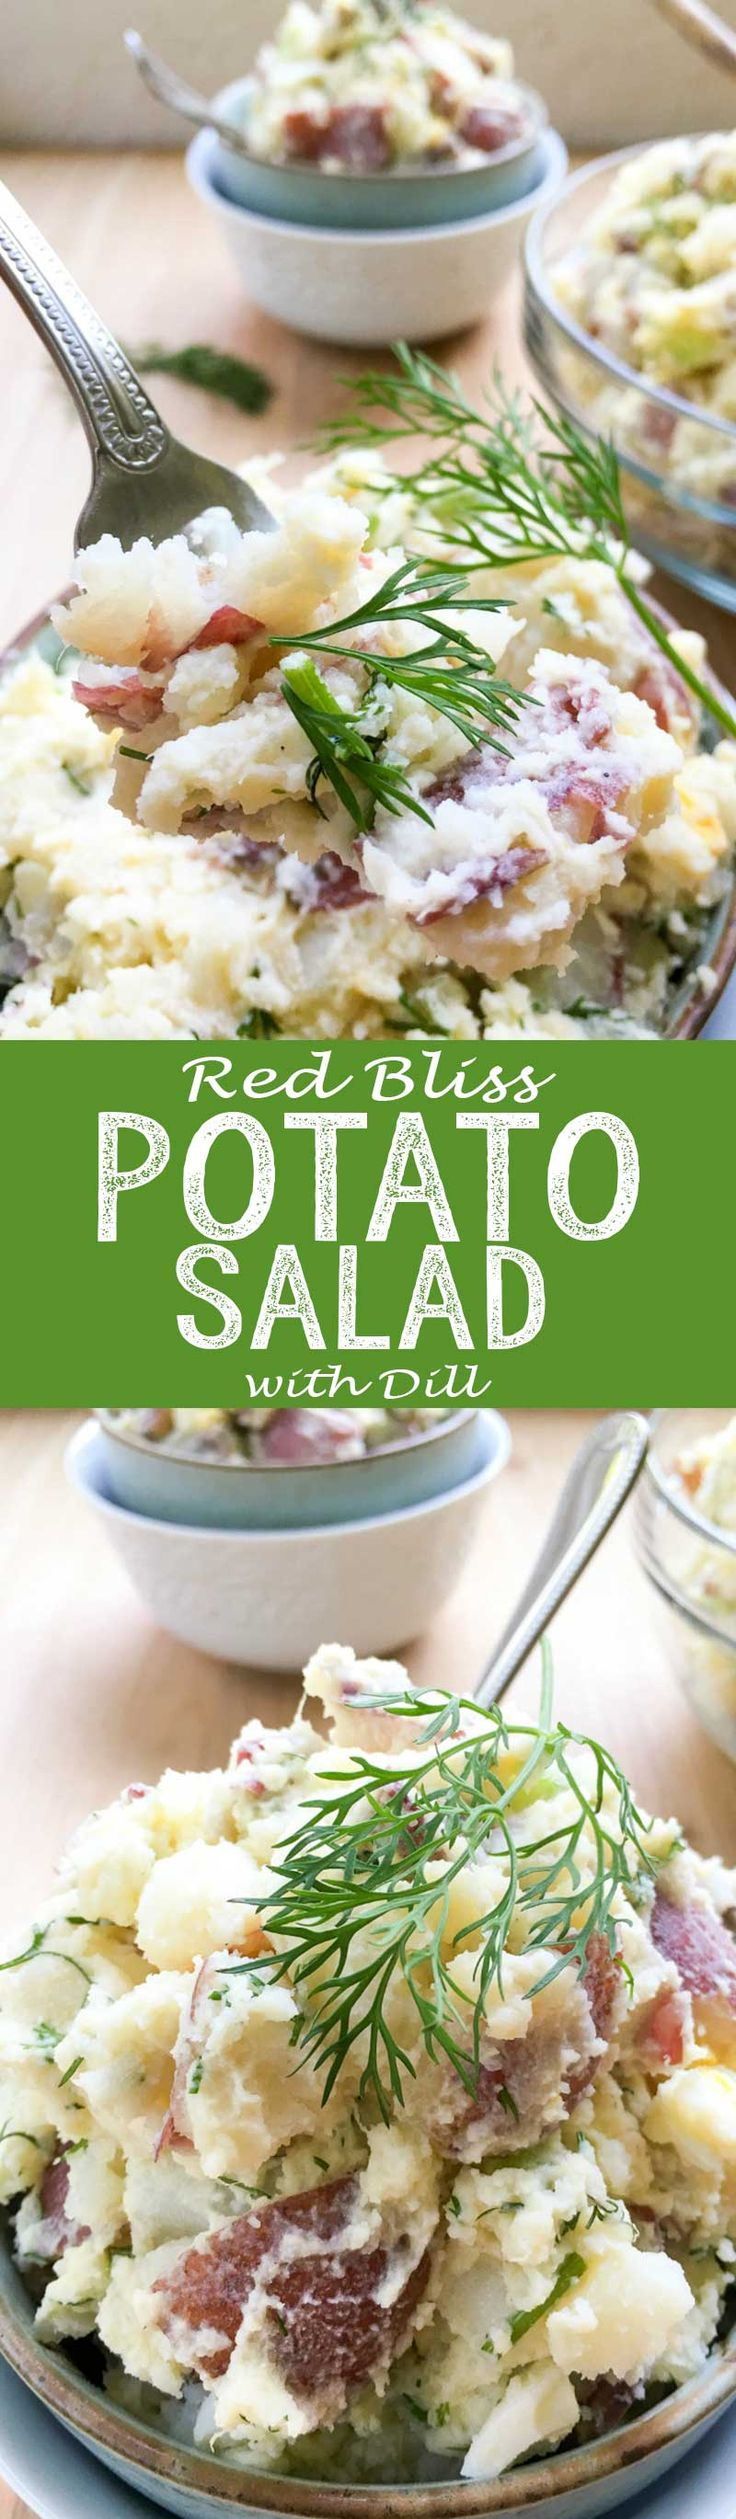 Red Bliss Potato Salad with Dill has crisp celery, onion, Dijon mustard and eggs, giving it a satisfying crunch and flavor. This classic and cool Summer salad feeds a crowd, making it perfect for BBQs, potlucks or a recipe to last during the week.